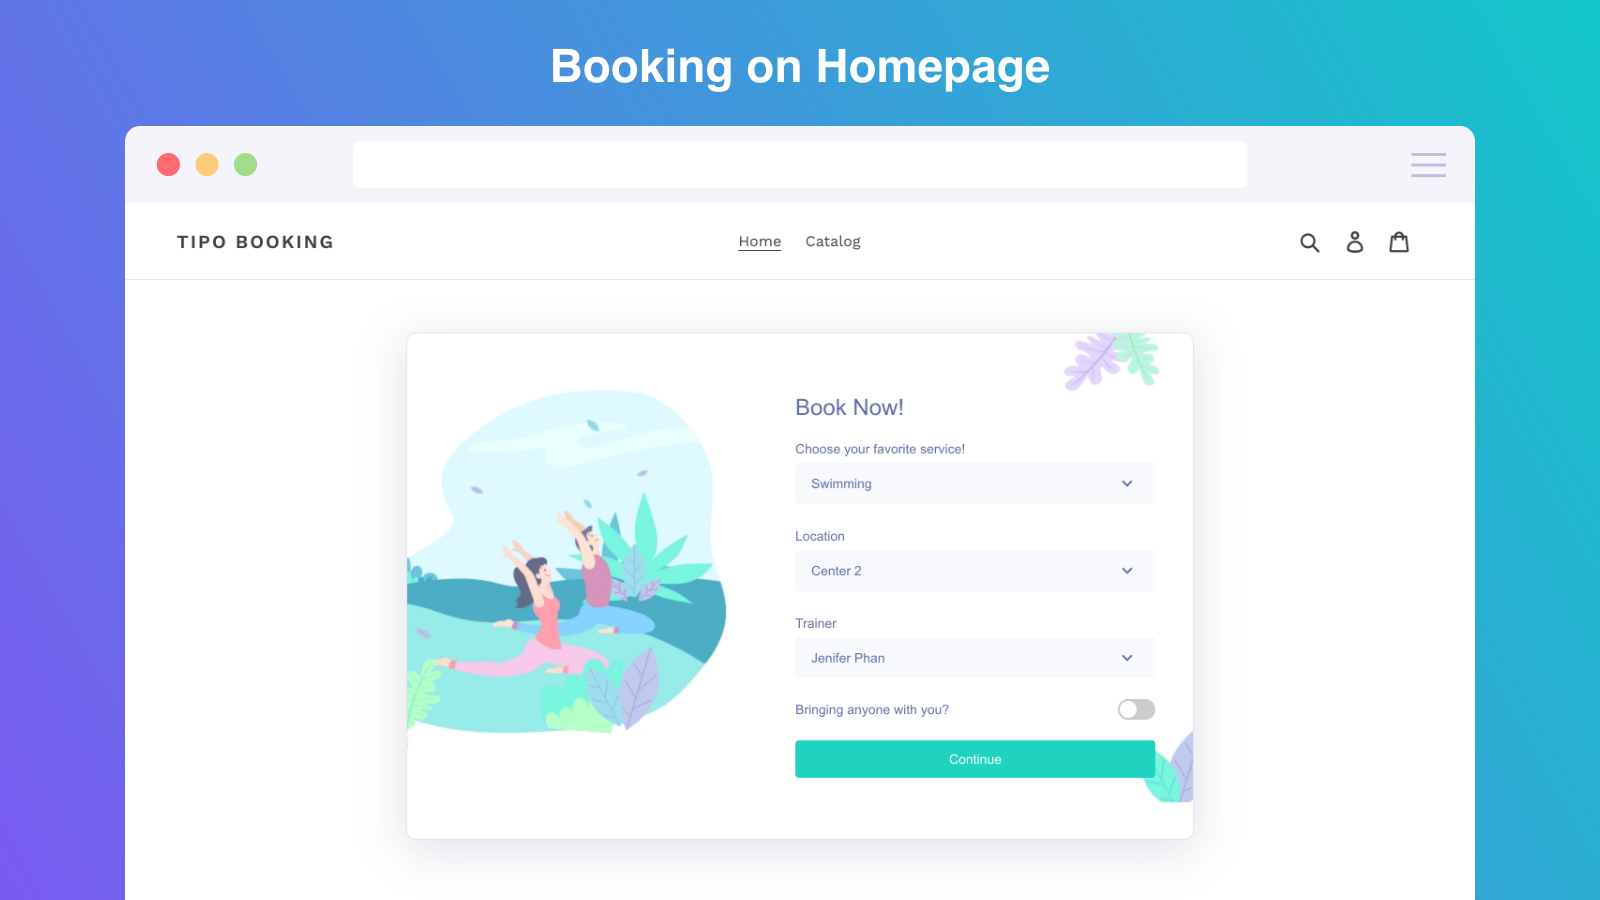 appoinment booking on home page